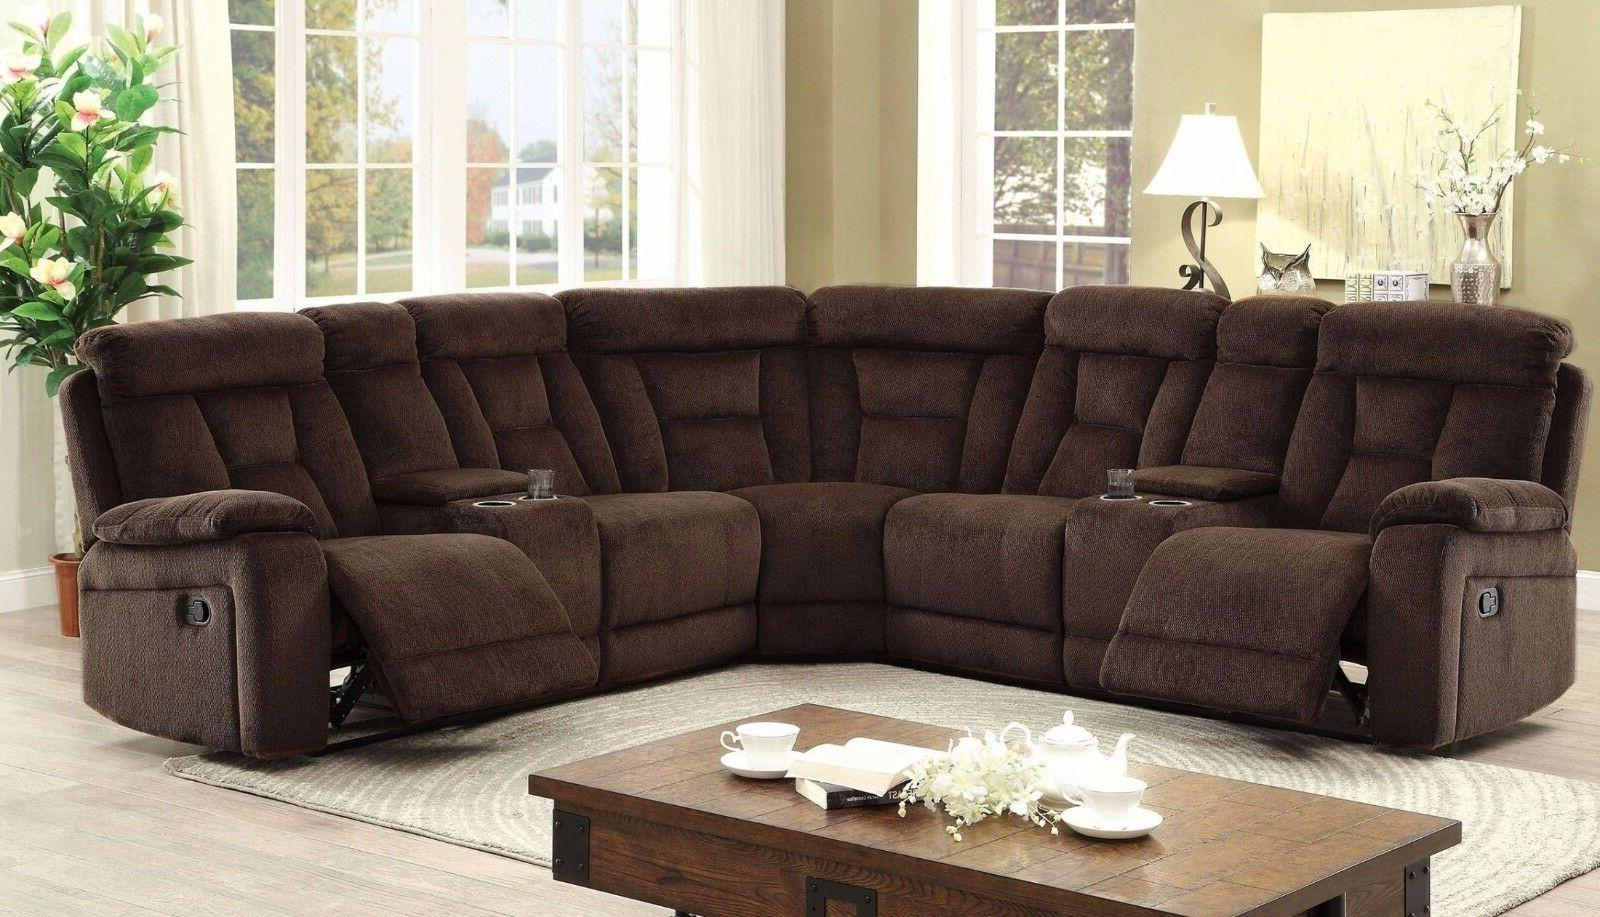 chenille fabric plush cushions upholstery brown sectional